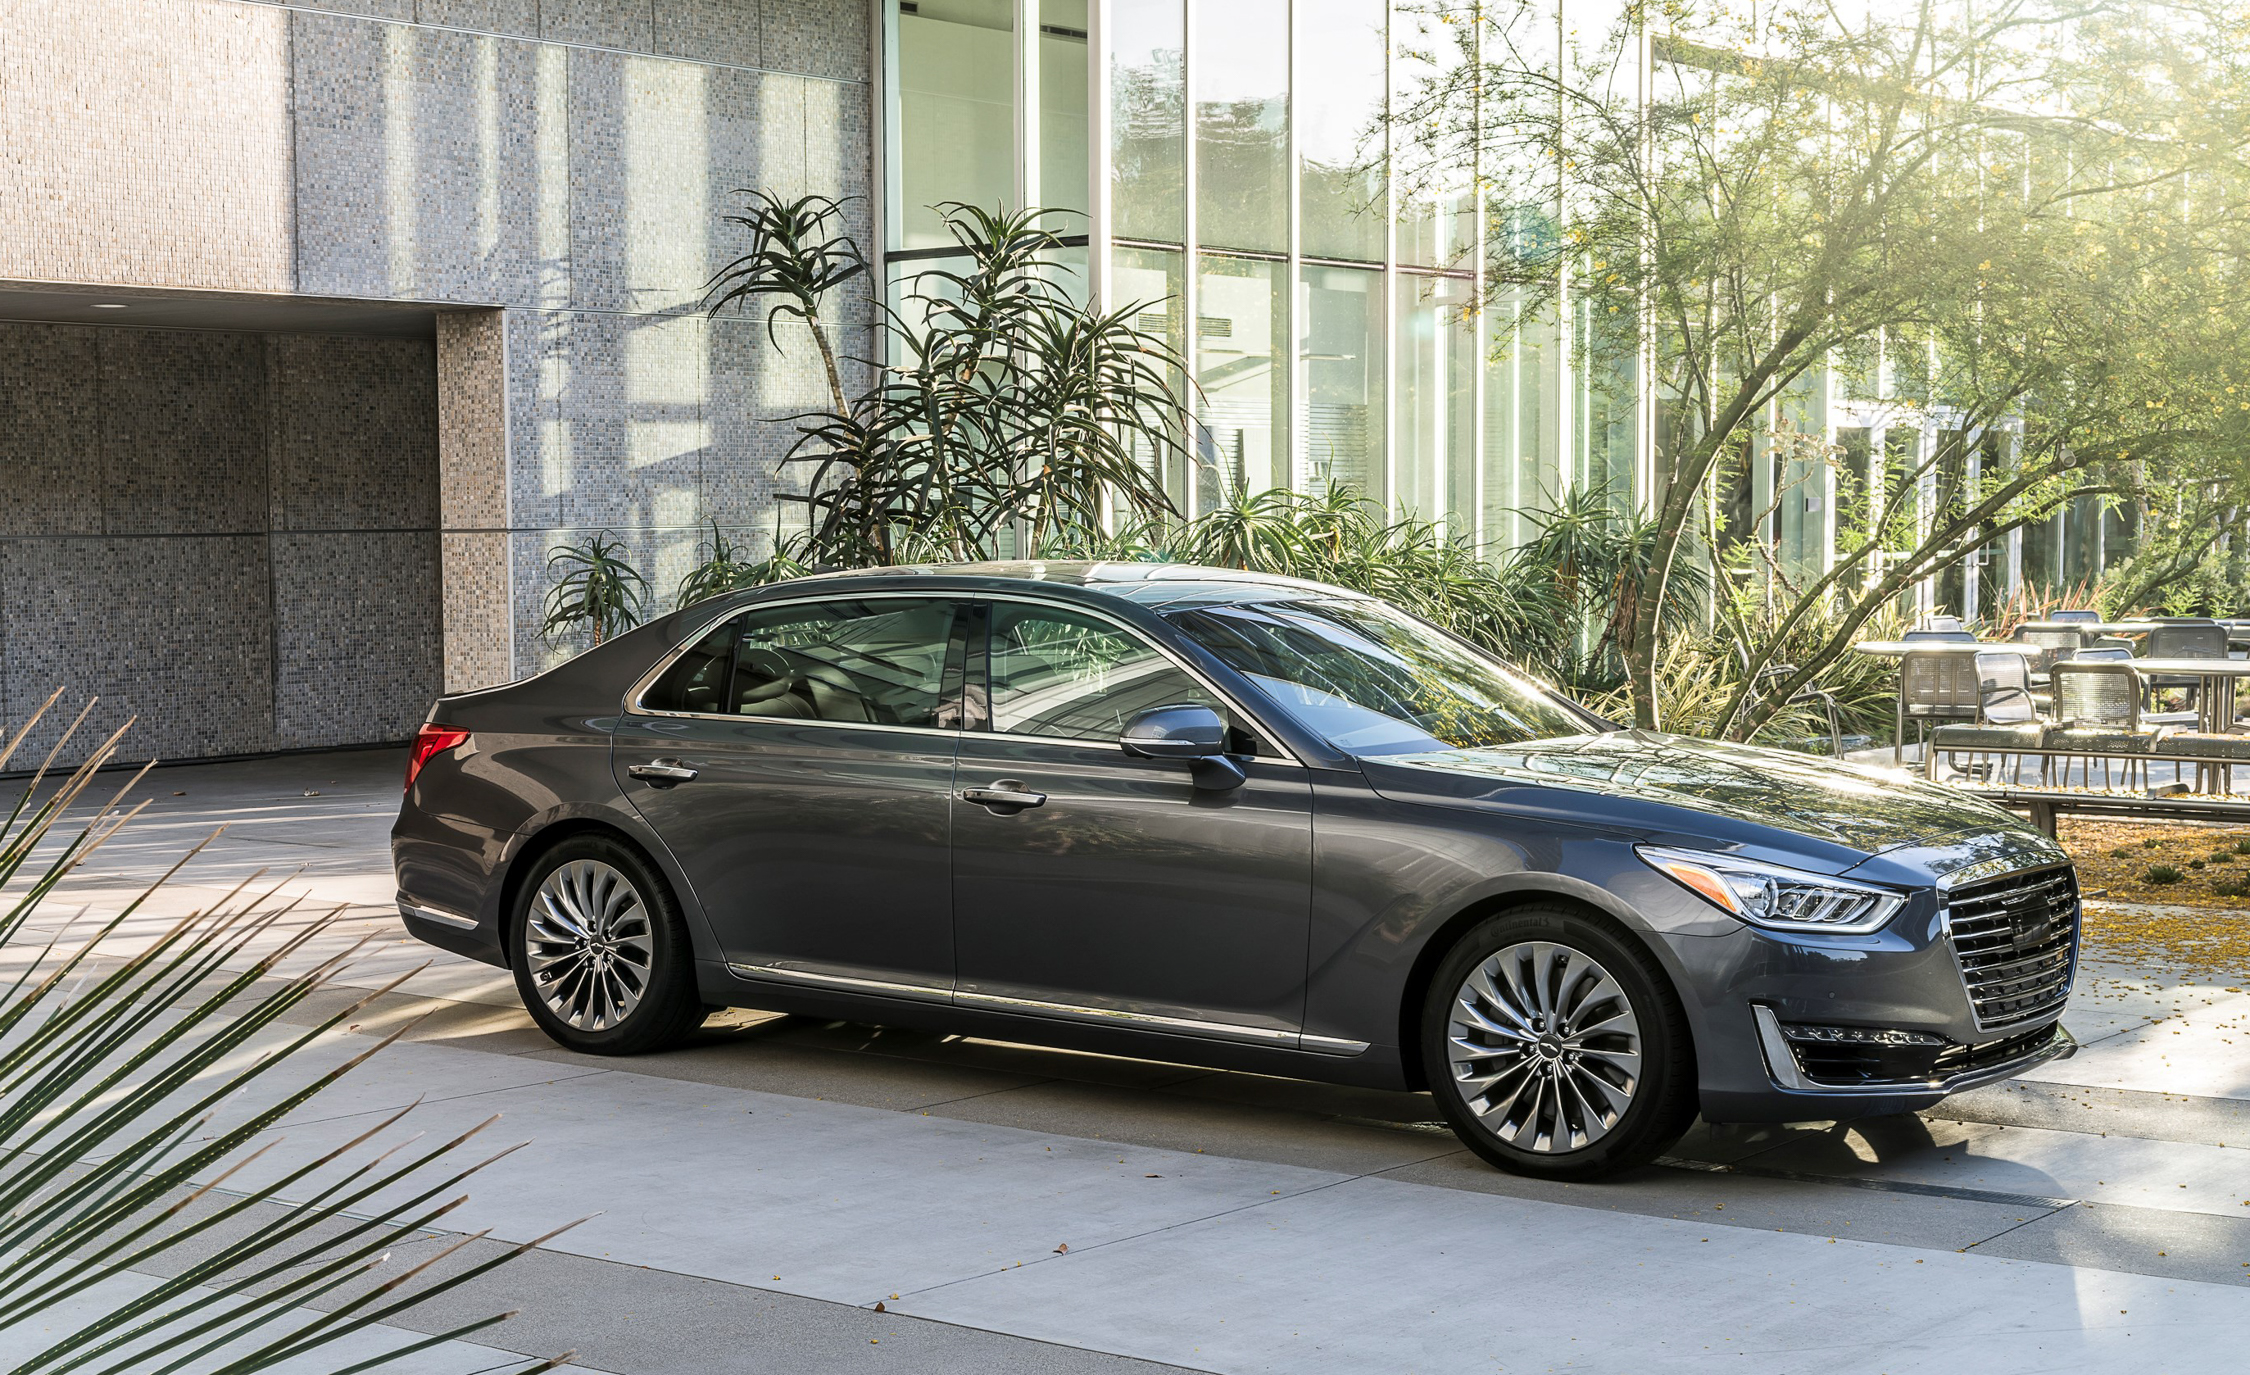 2017 Genesis G90 Exterior Preview (Photo 6 of 19)